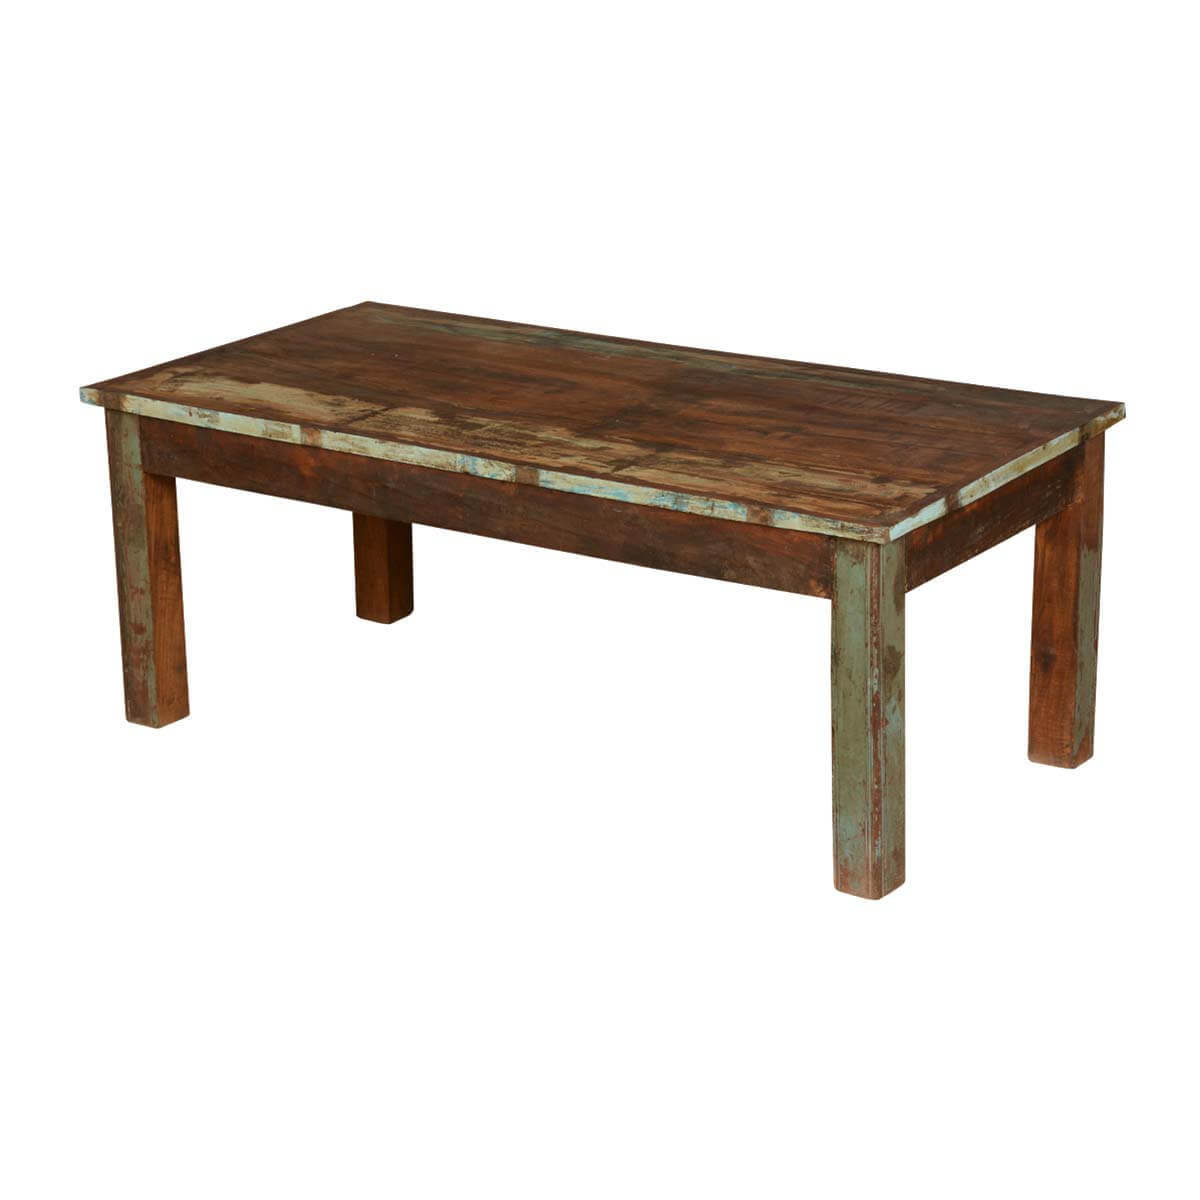 Farmhouse distressed reclaimed wood rustic coffee table Coffee tables rustic